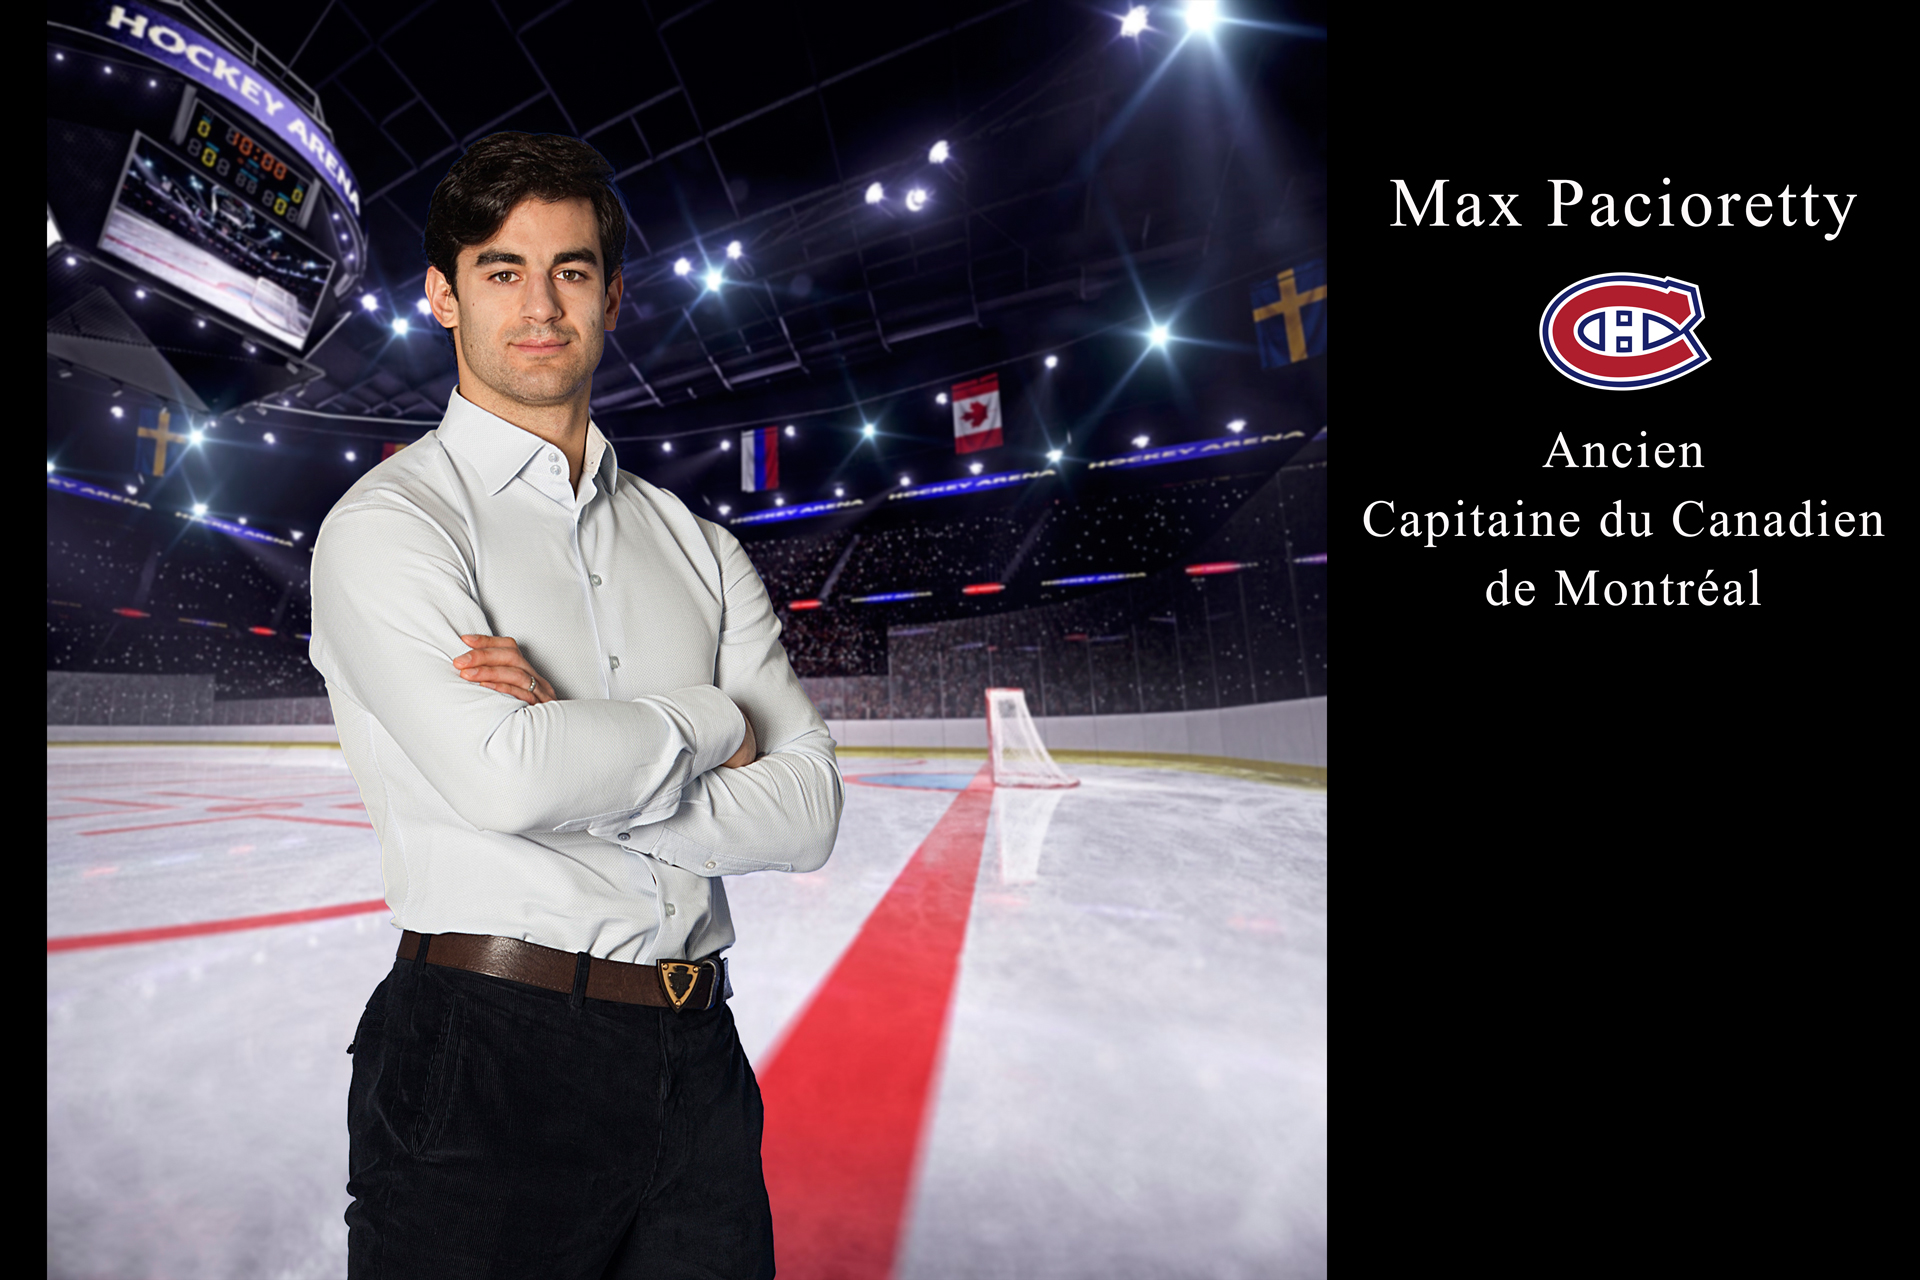 Max Pacioretty ancien capitaine du Canadiens de Montreal